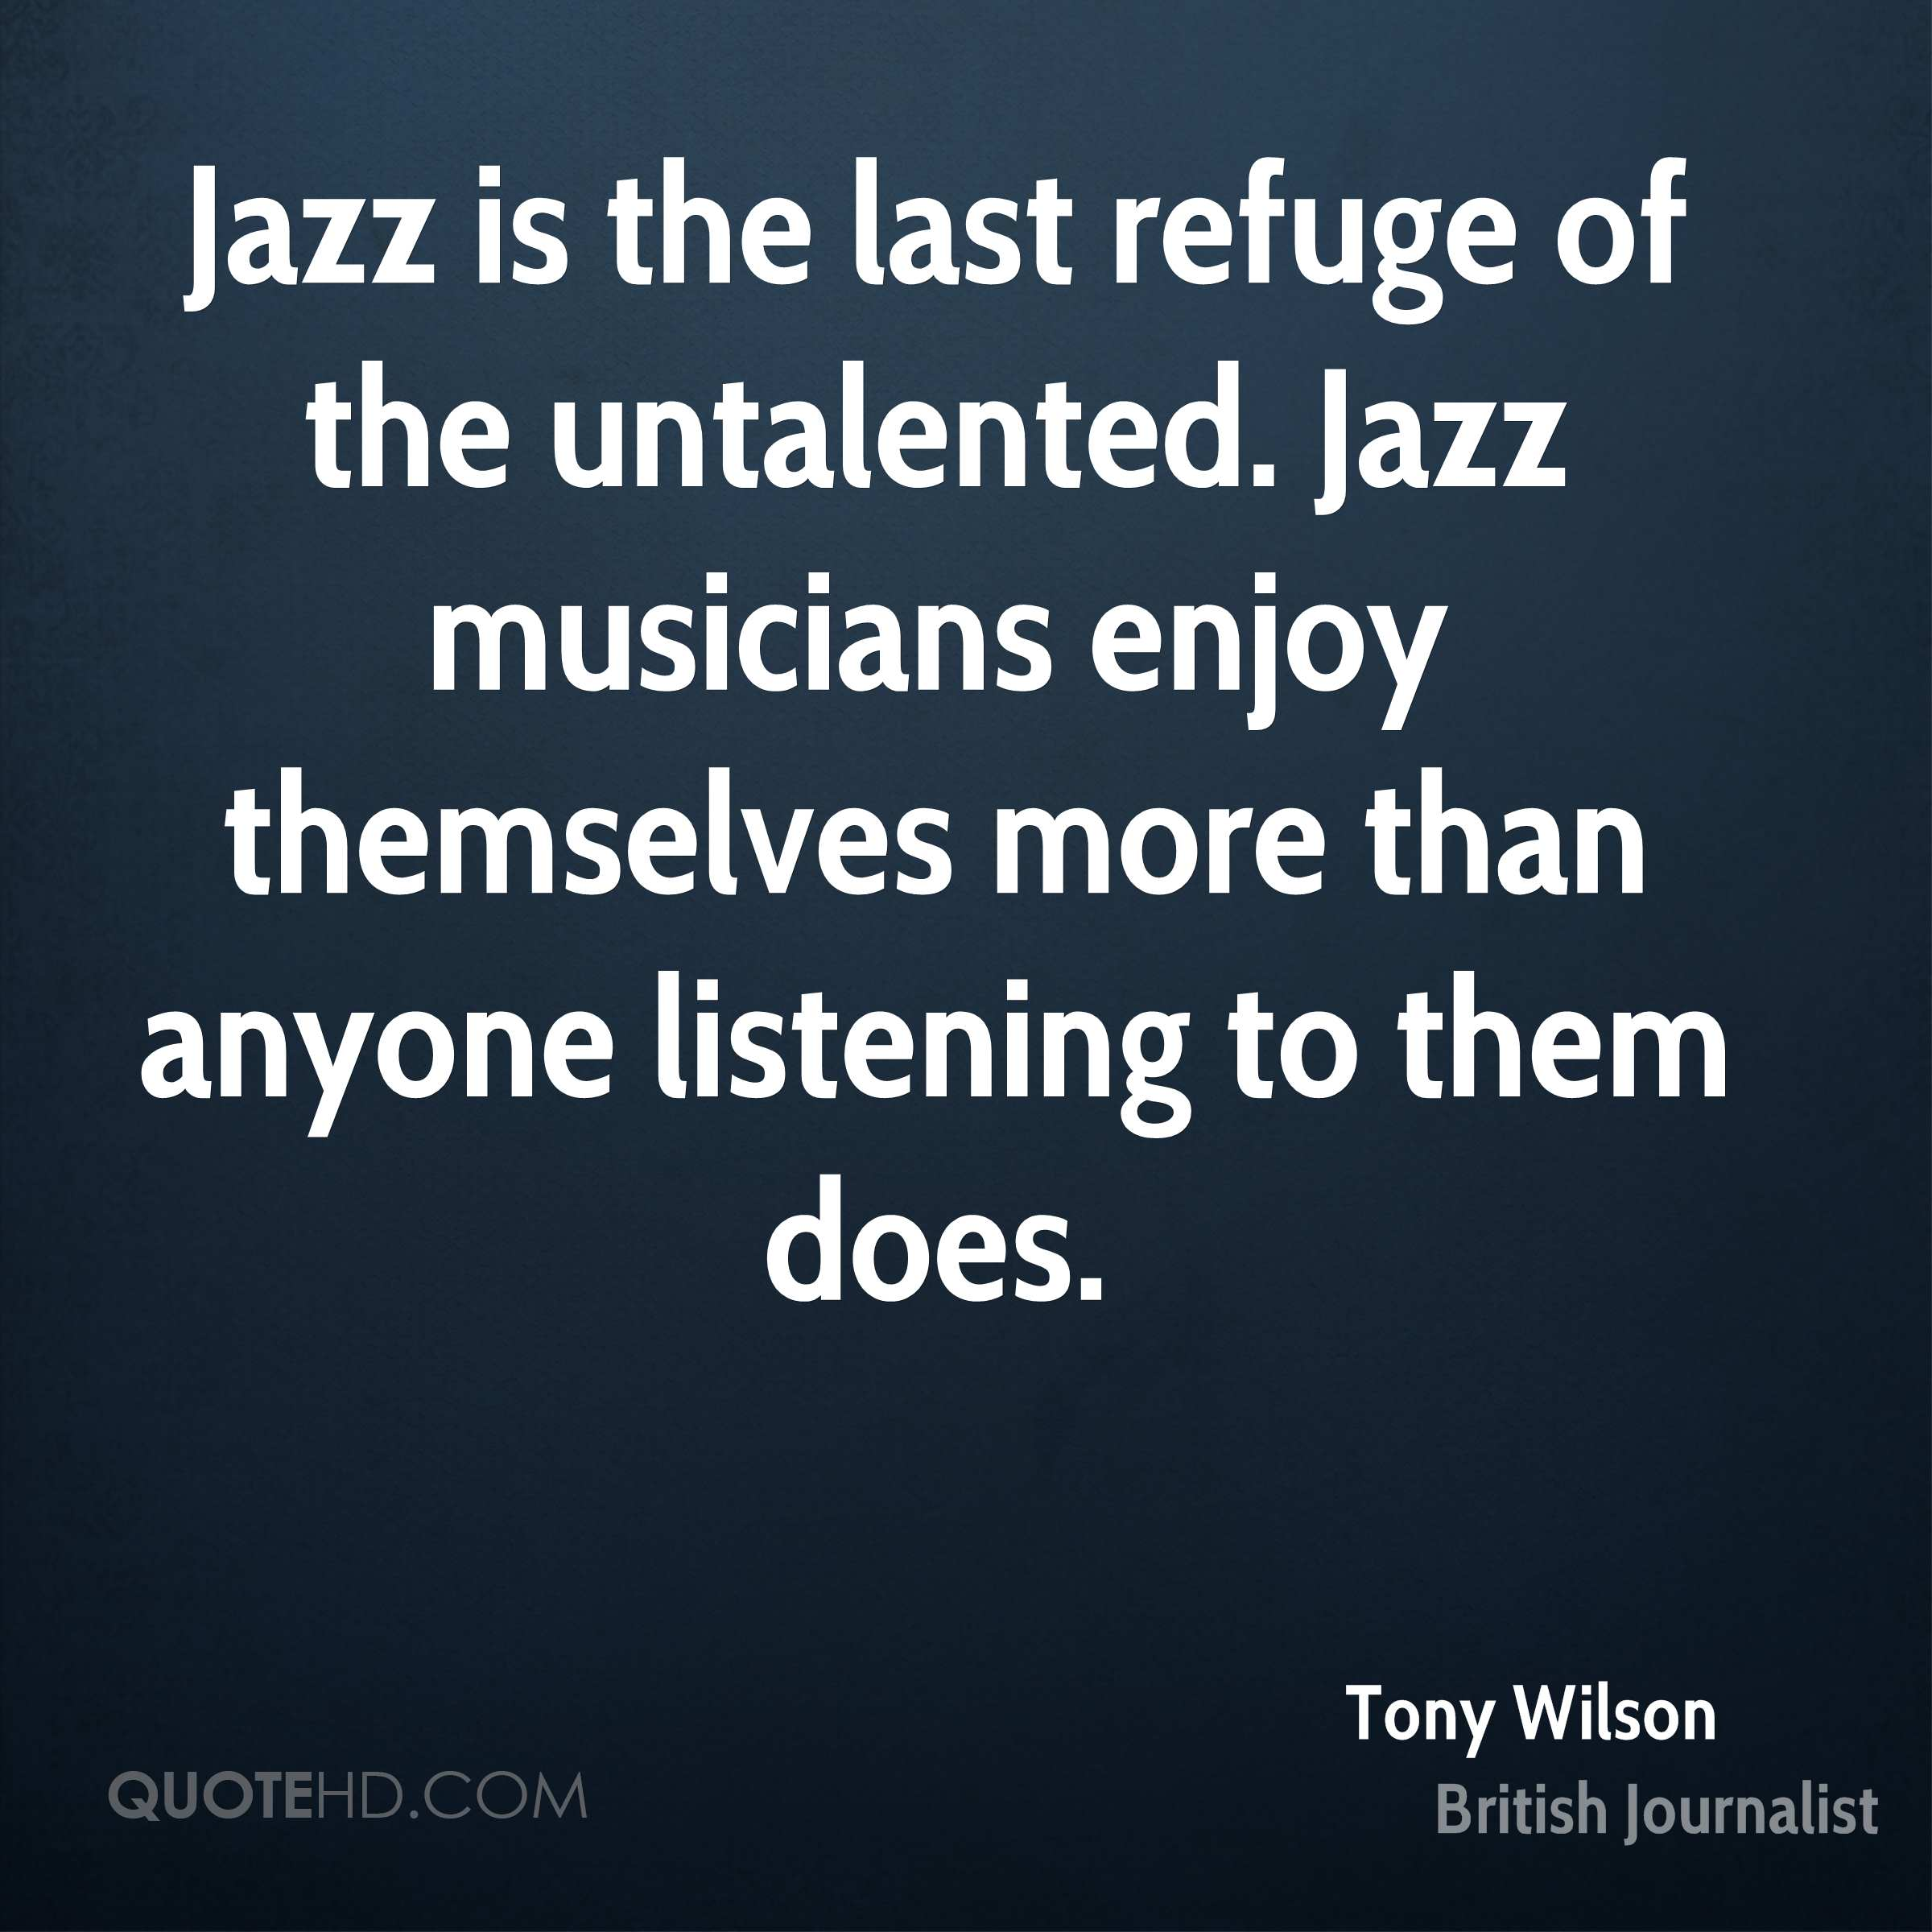 Jazz is the last refuge of the untalented. Jazz musicians enjoy themselves more than anyone listening to them does.